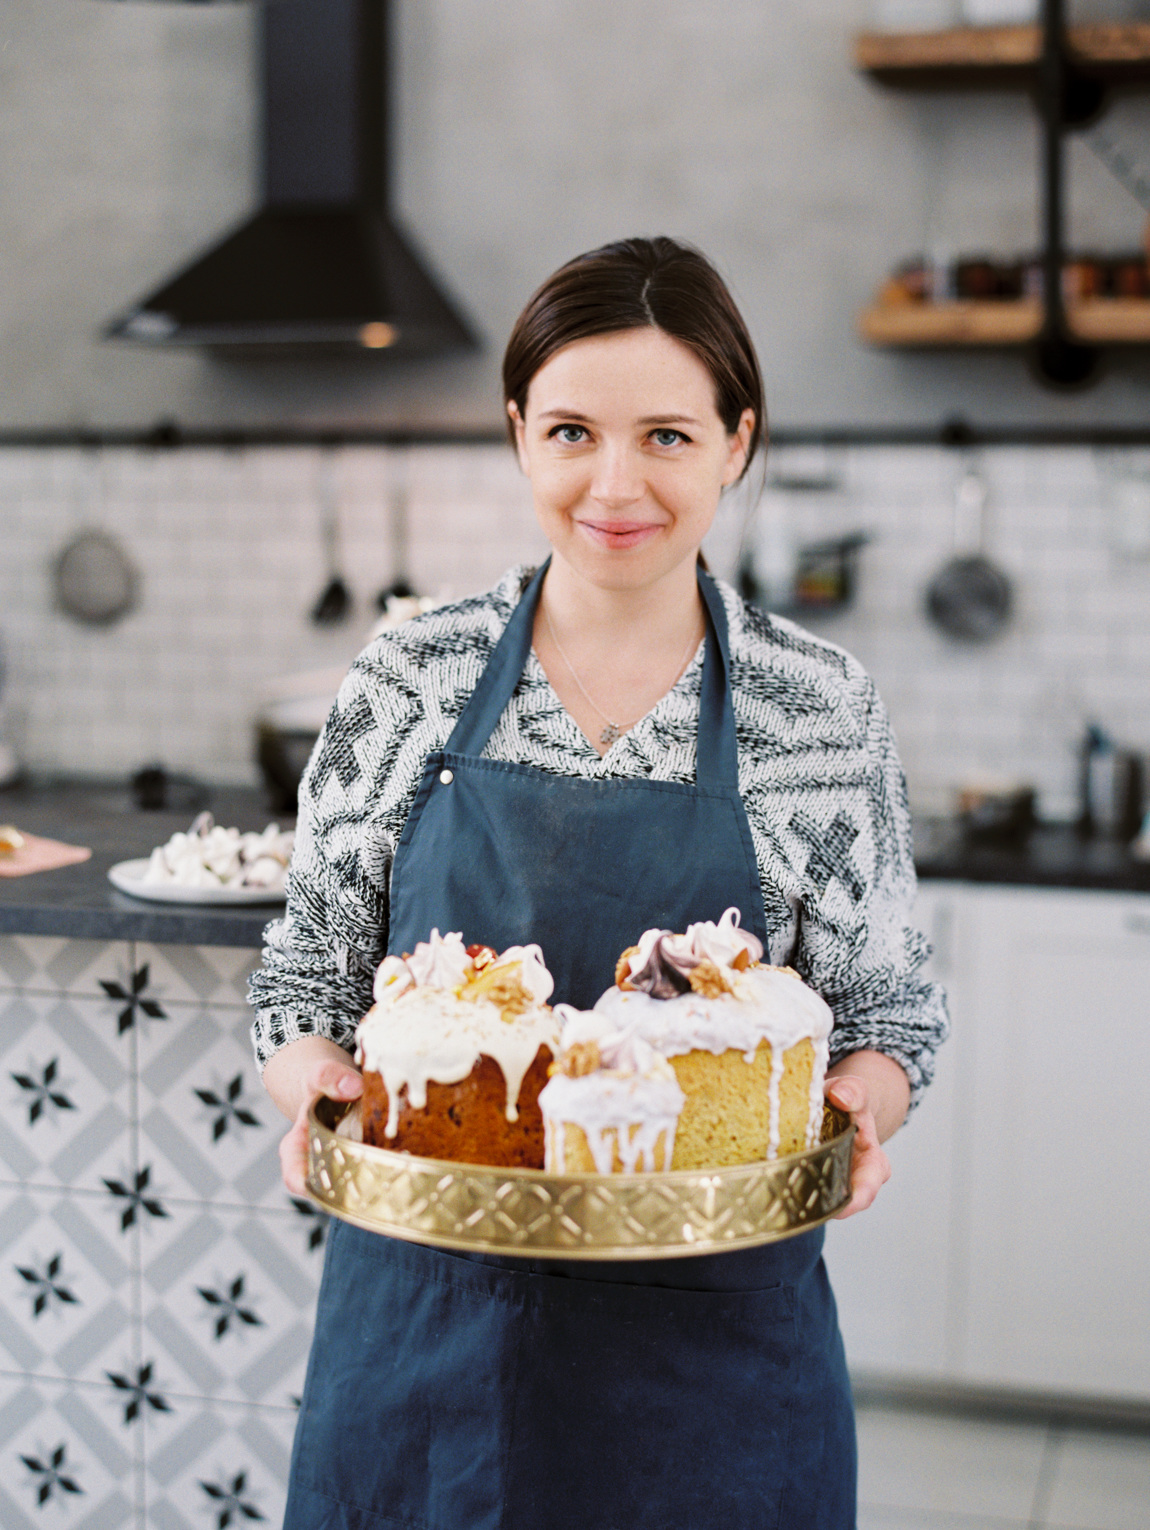 Content woman with tray of holiday cakes